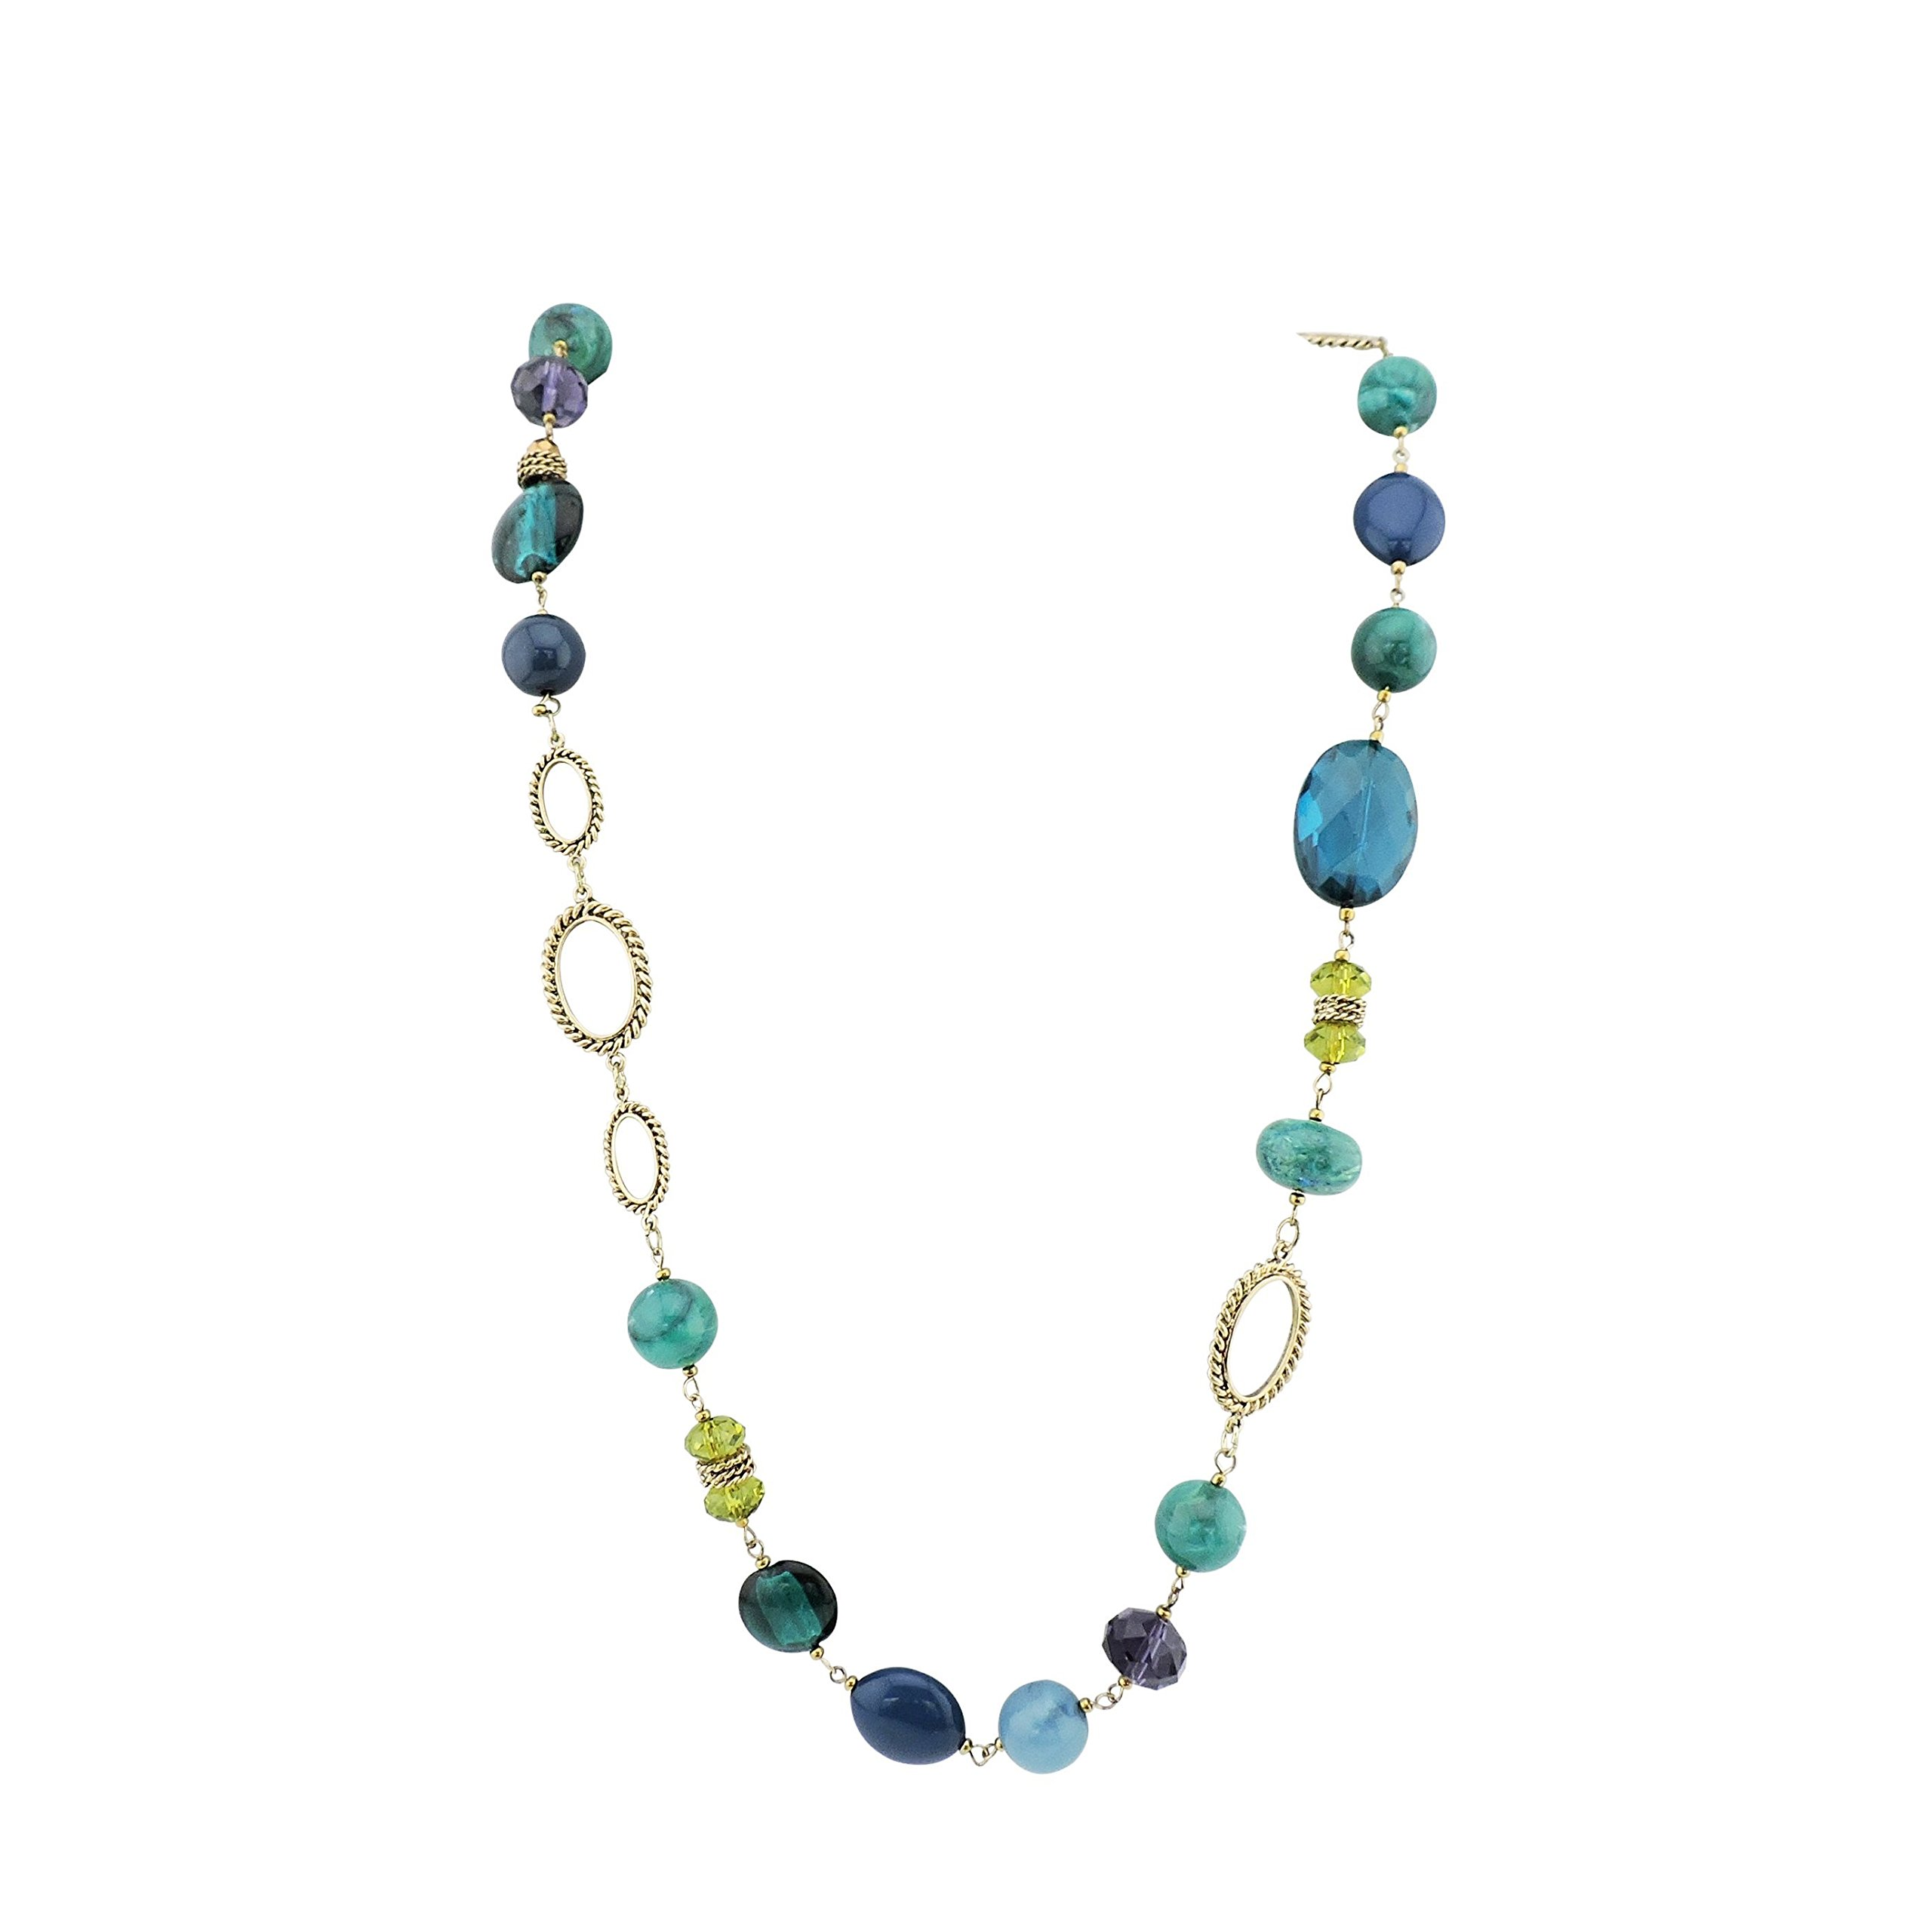 FIRSTMEET Long Fashion Handmade Resin Beaded Chain 43'' Necklace (XL-1001)